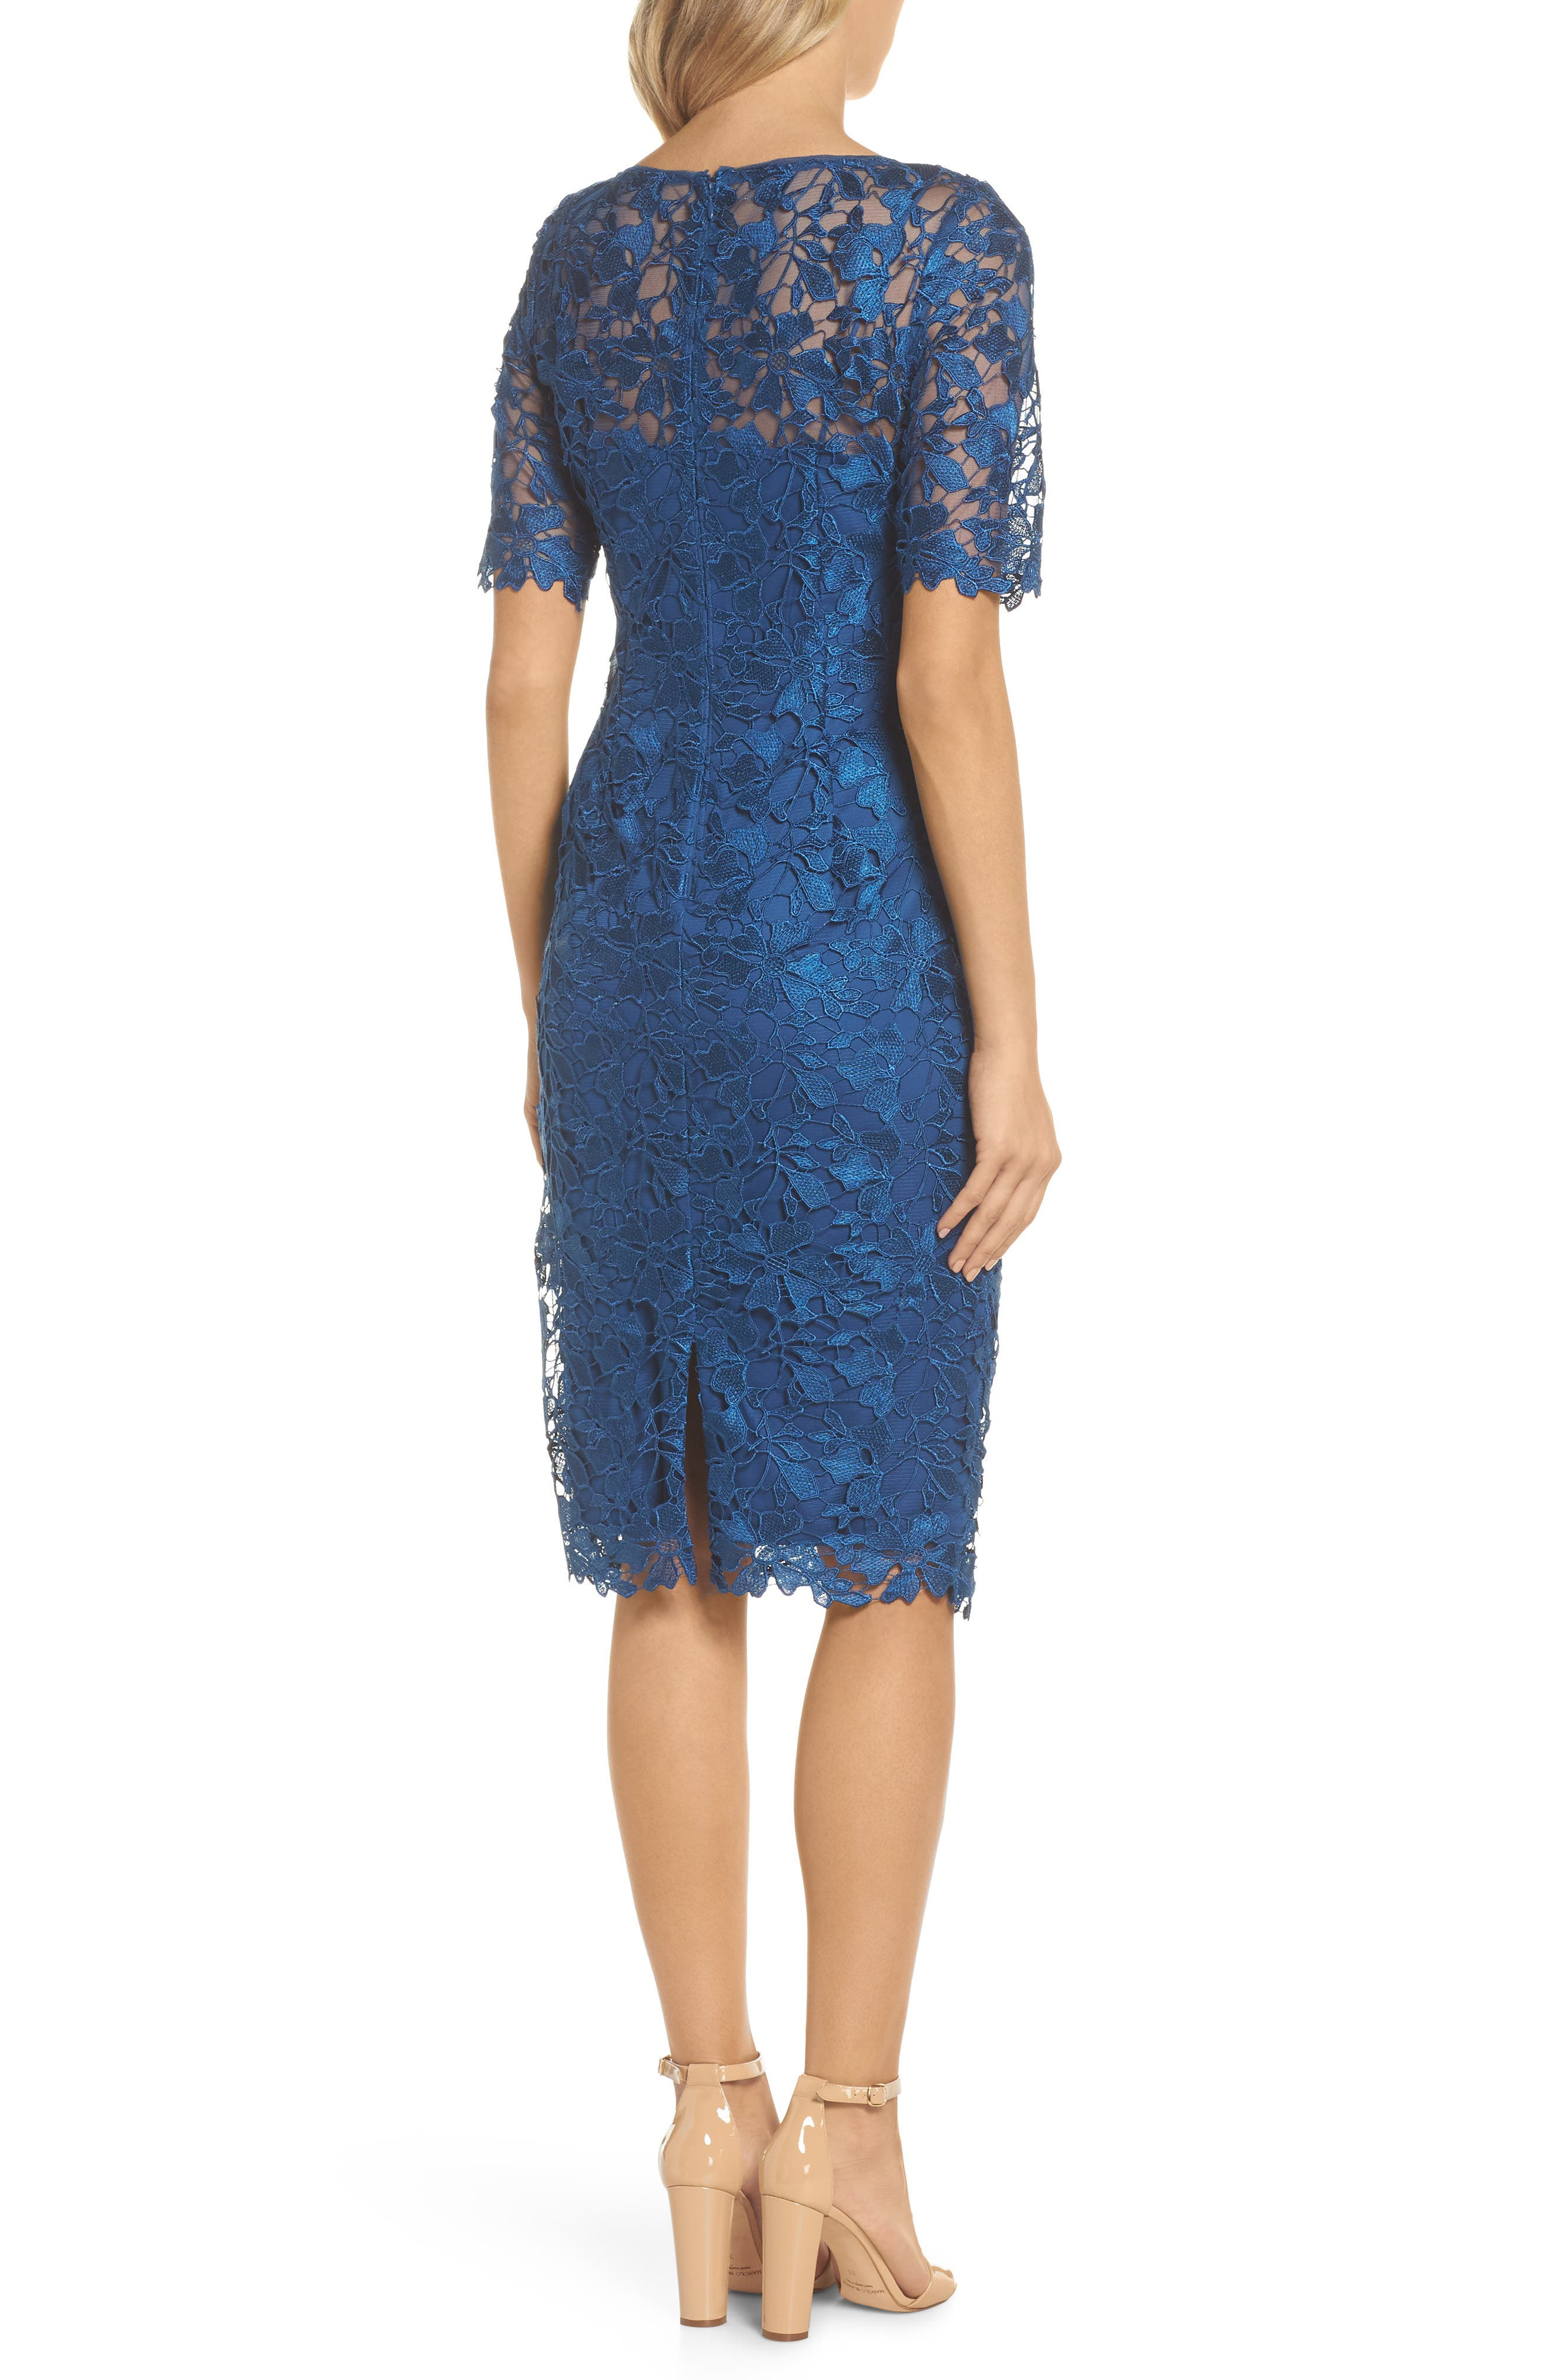 ADRIANNA PAPELL,                             Guipure Lace Sheath Dress,                             Alternate thumbnail 2, color,                             413